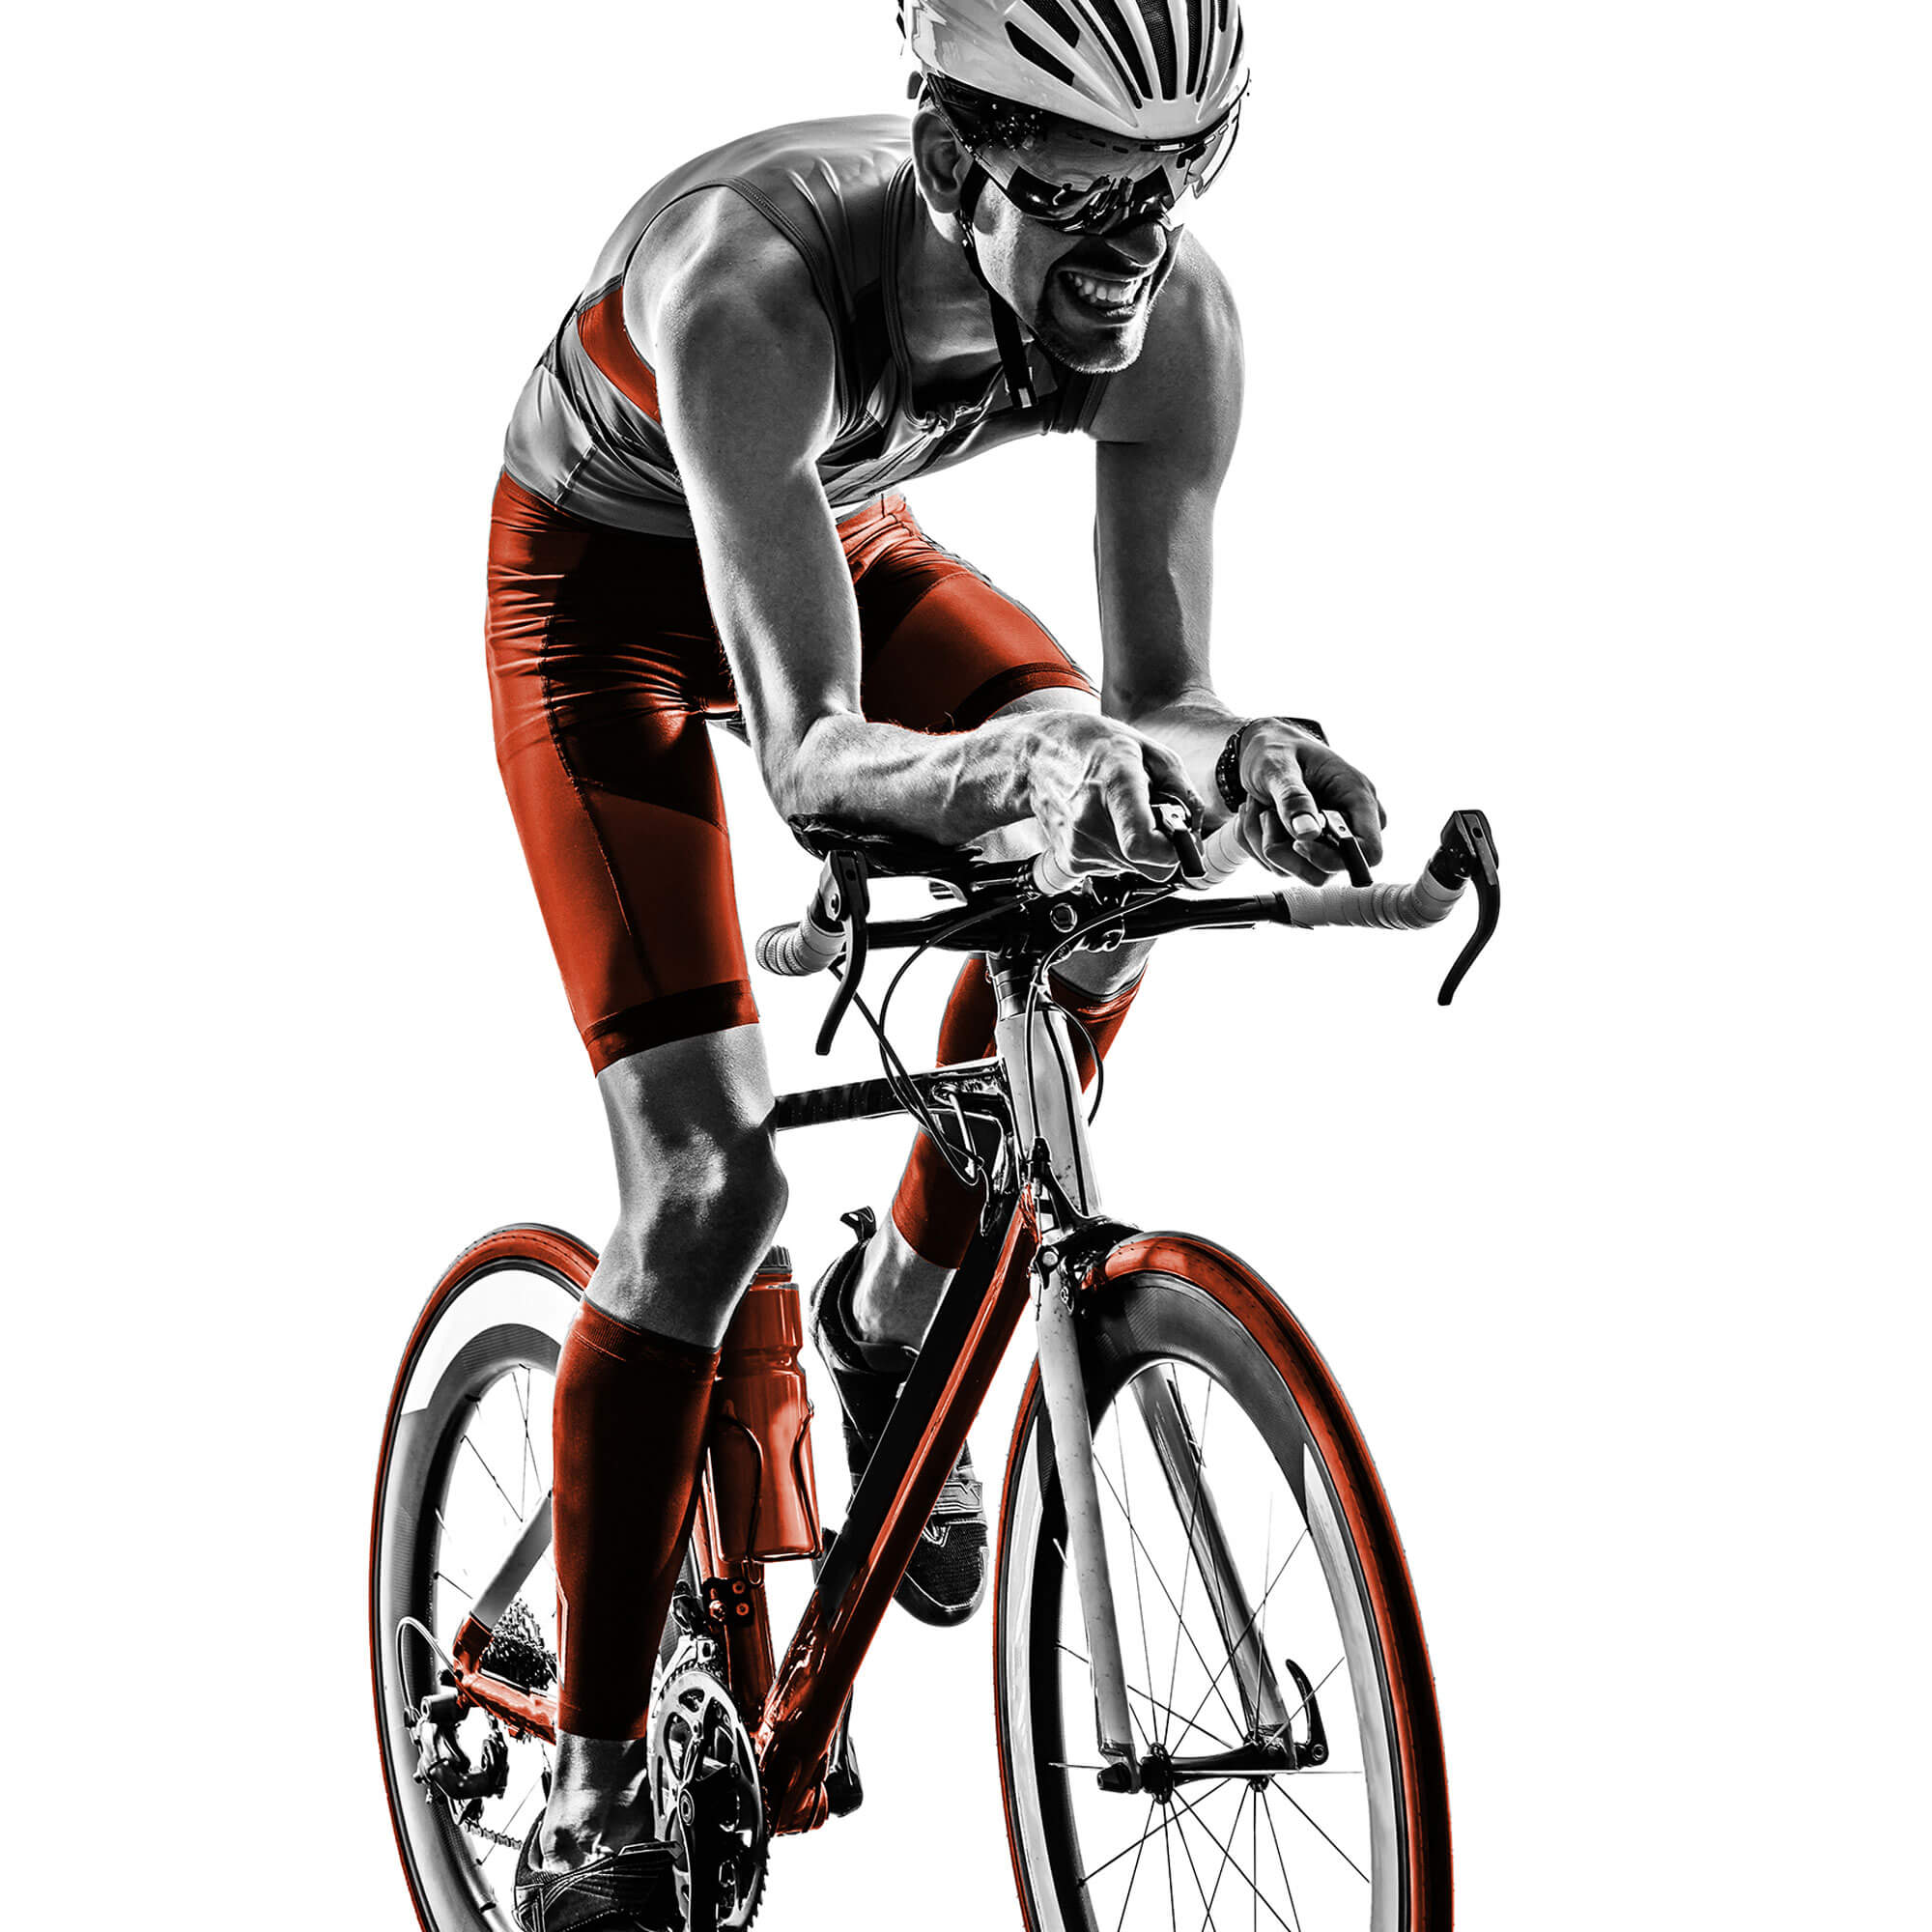 Grey and orange image of male cyclist